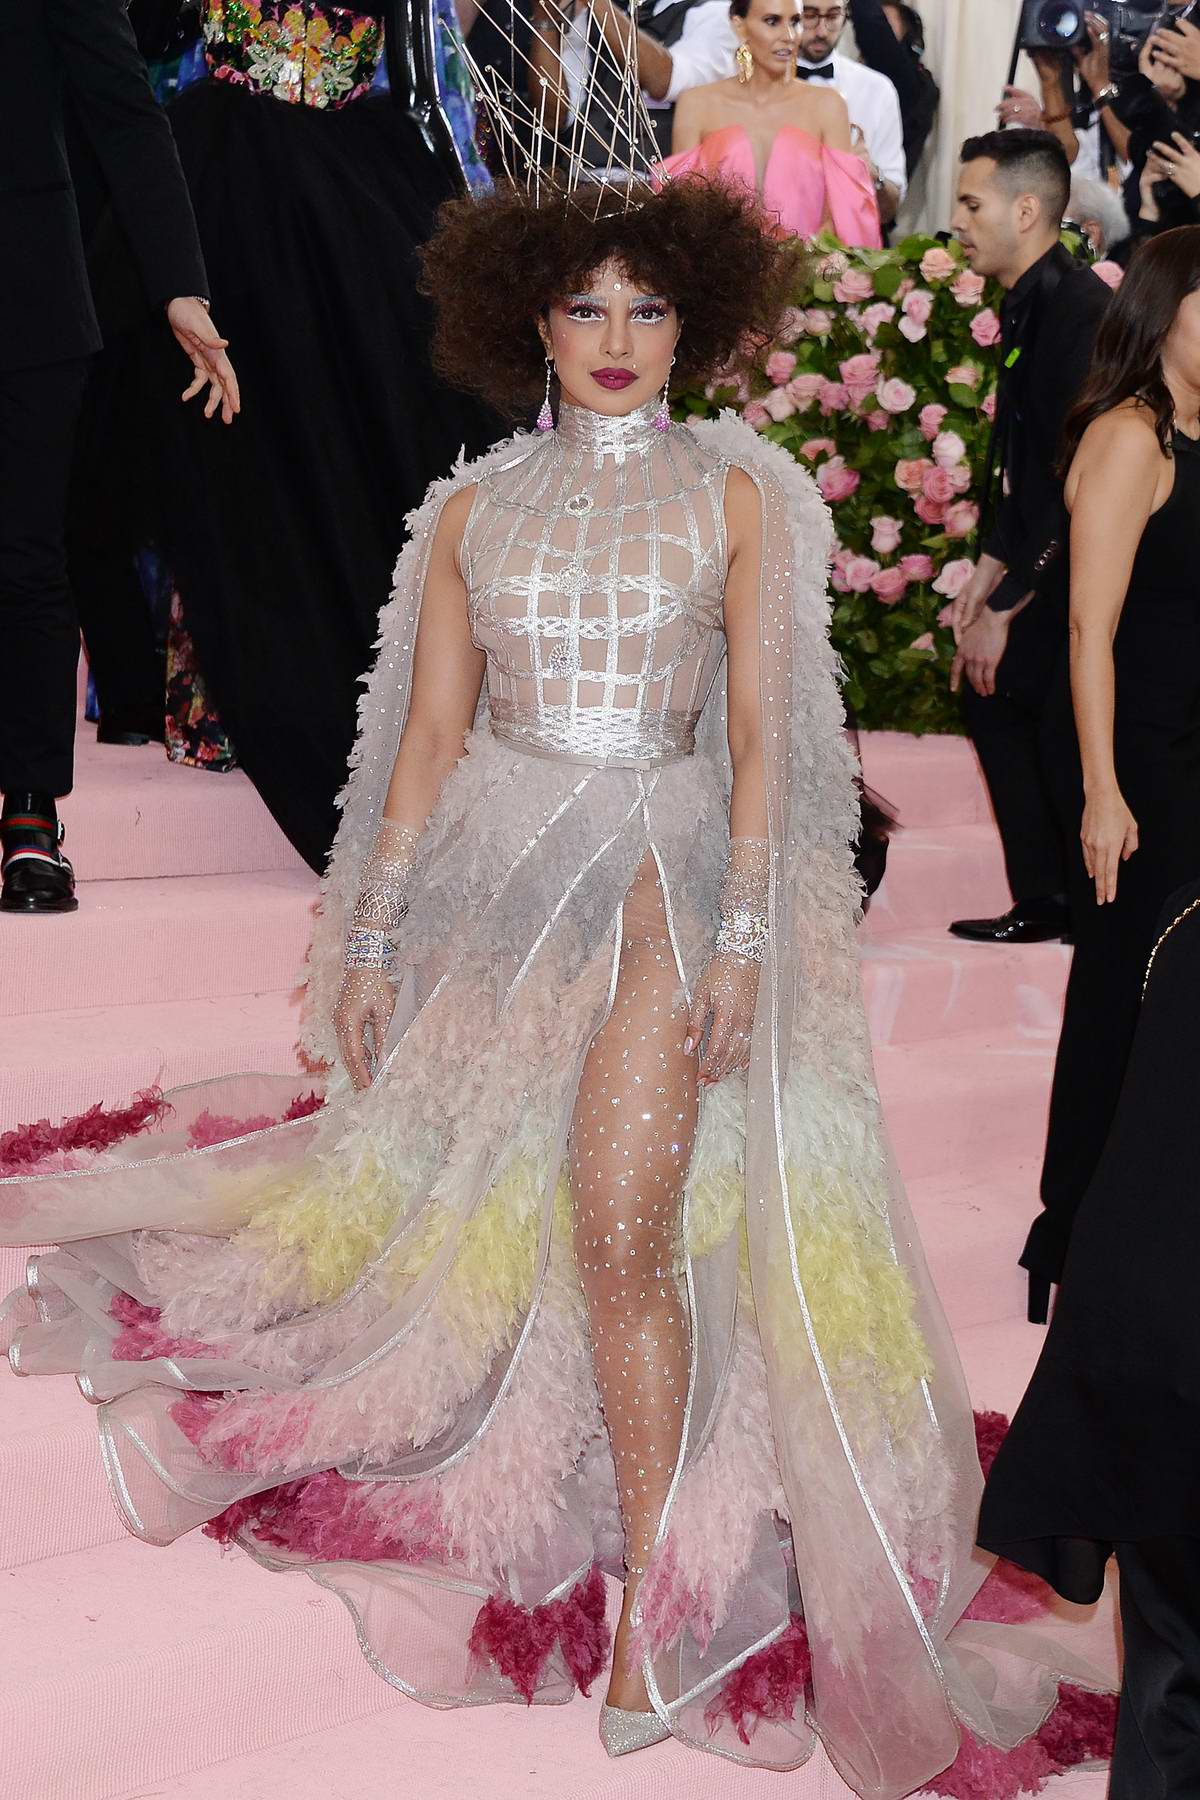 Priyanka Chopra attends The 2019 Met Gala Celebrating Camp: Notes on Fashion in New York City